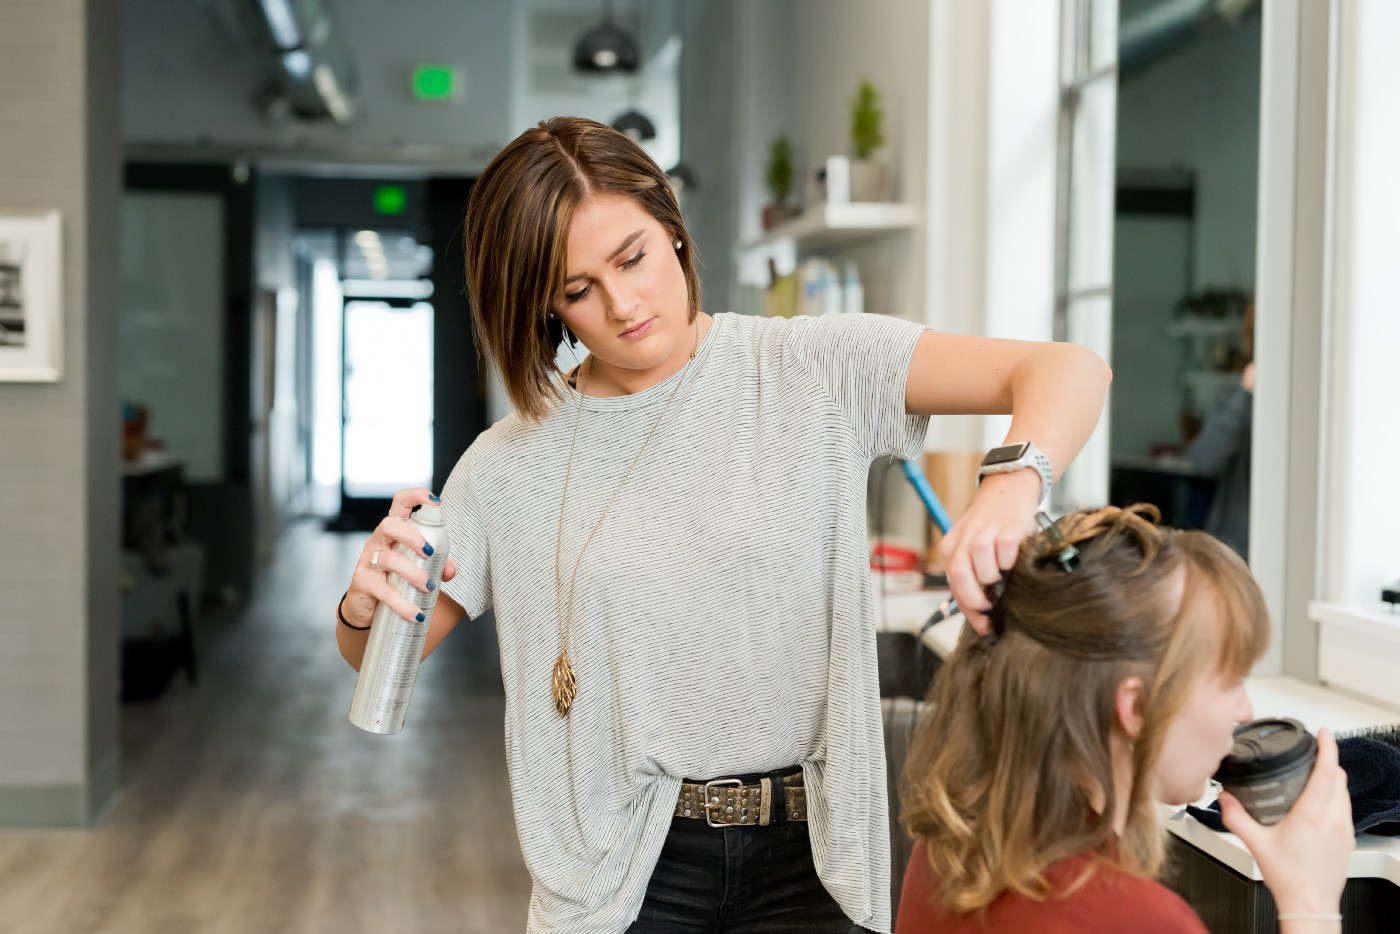 A young hairdresser wearing a white top was blowing a client's hair while she drinks coffee.